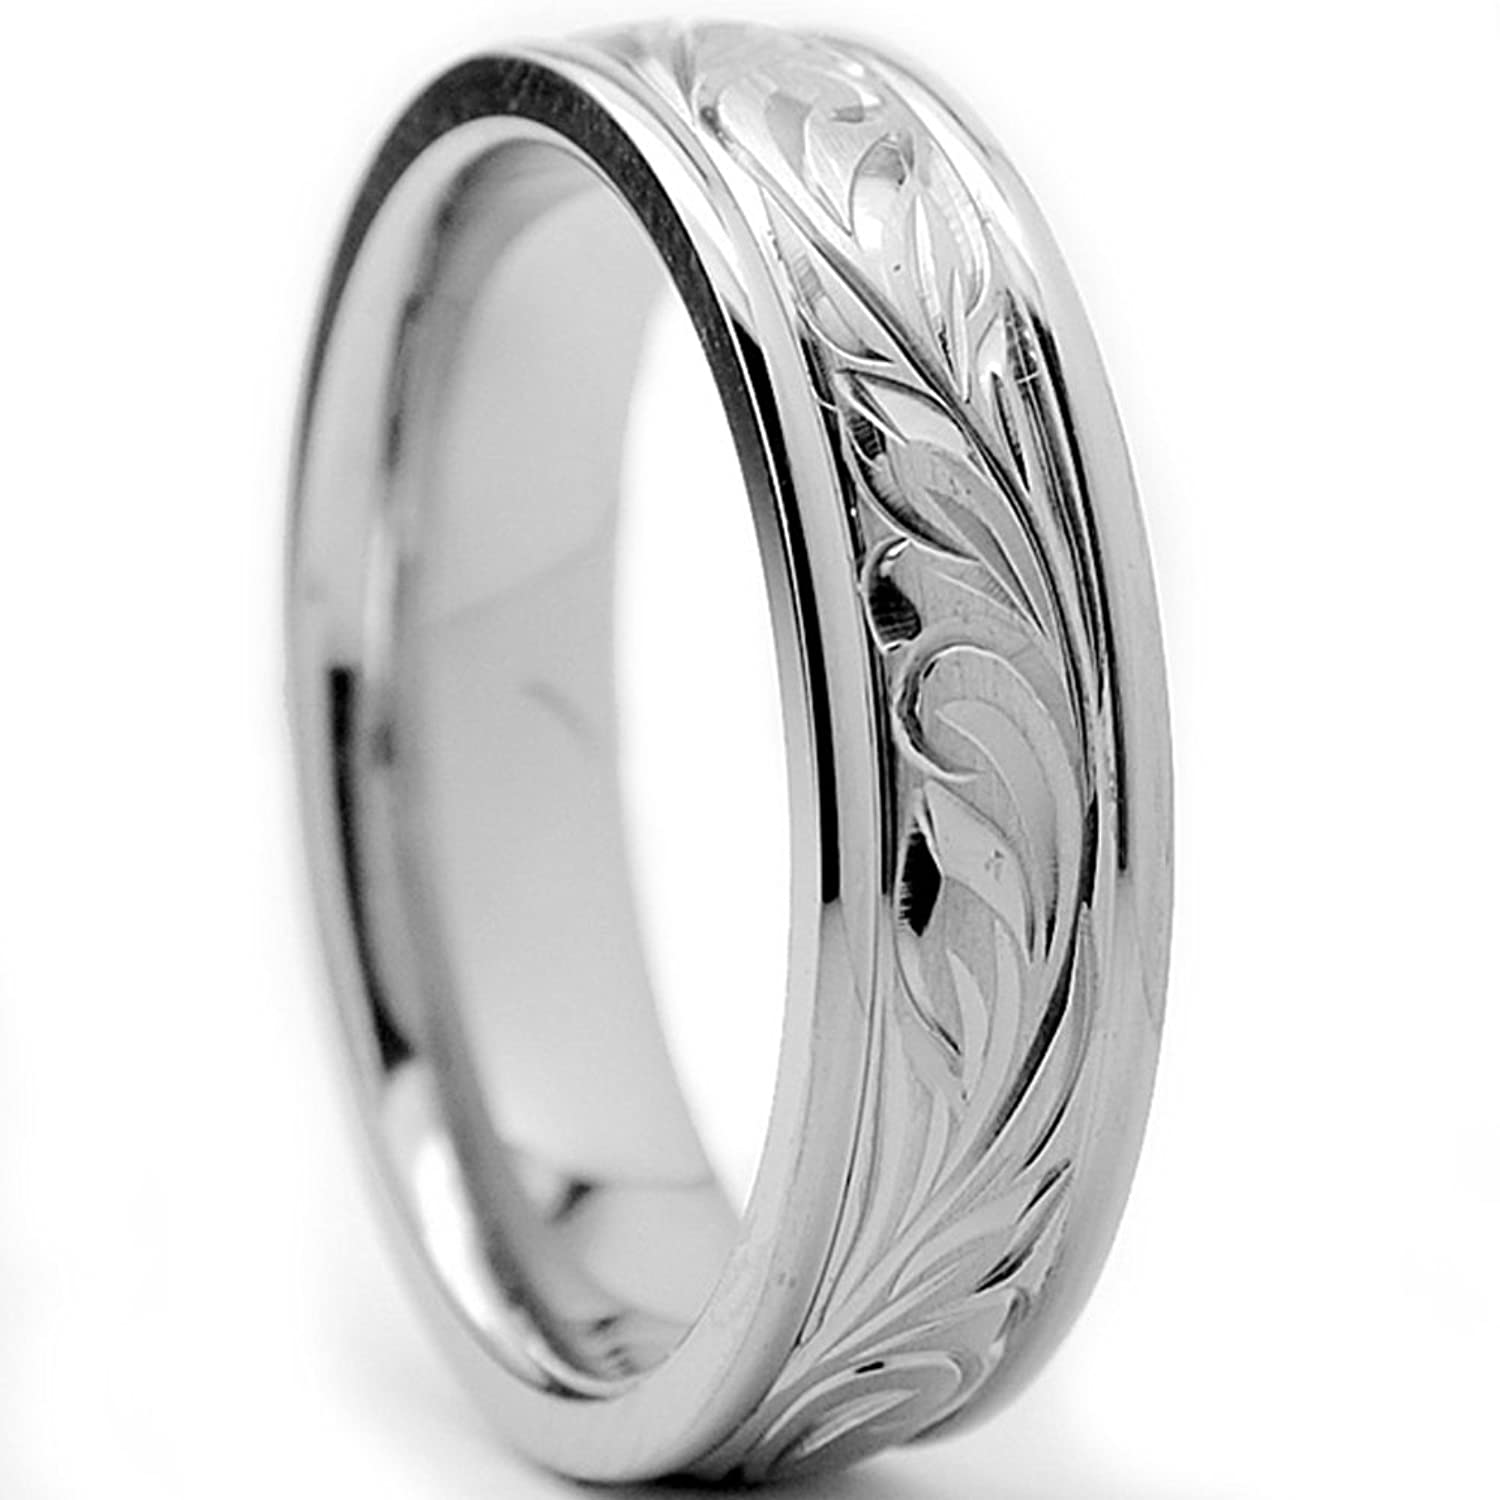 amazon com 6mm titanium ring wedding band with engraved floral